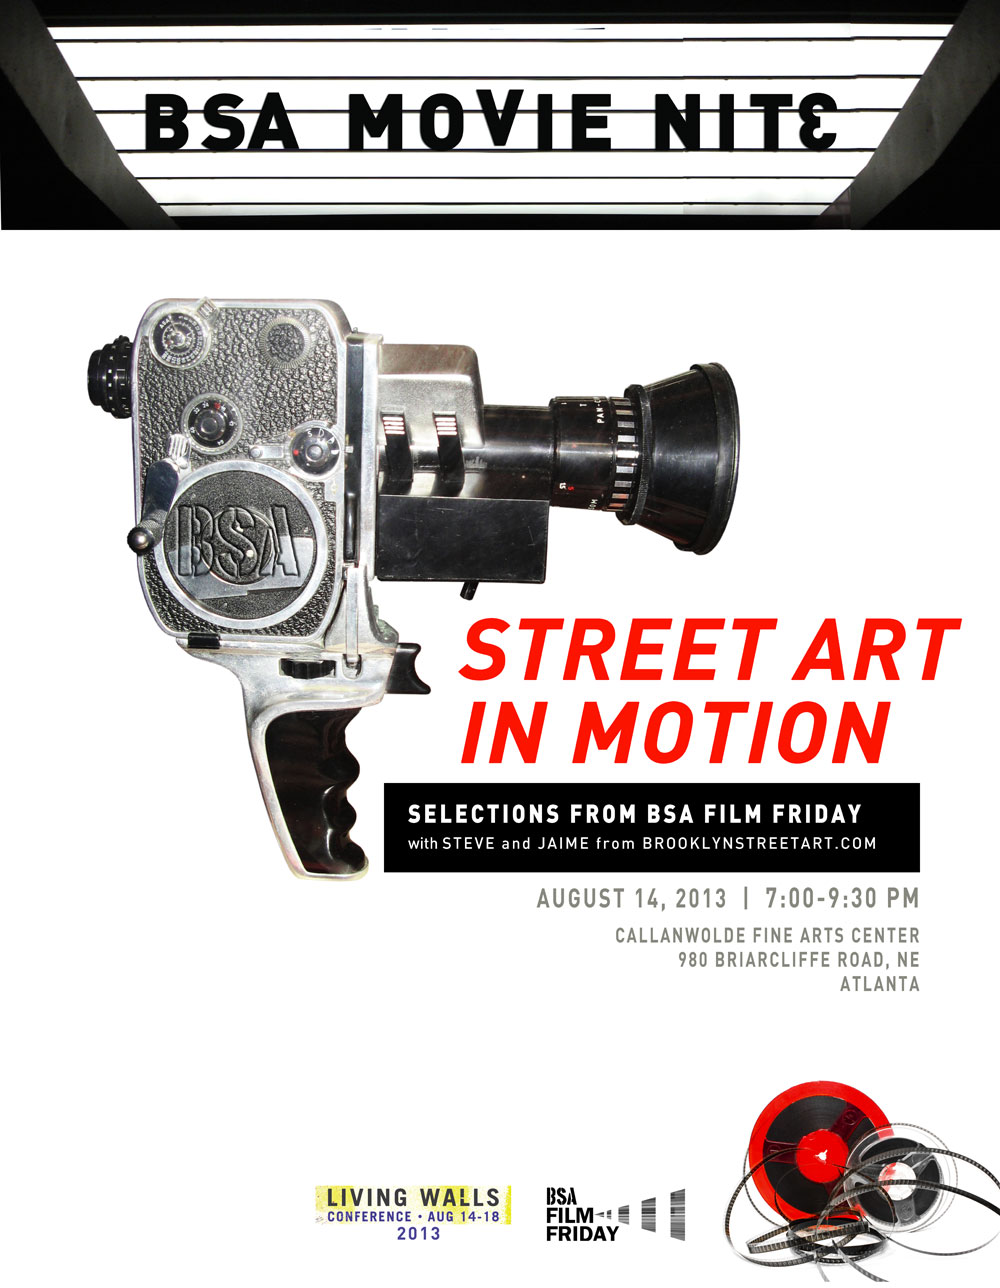 BSA-Movie-Nite-Motion-1000-Living-Walls-2013-Poster-080313